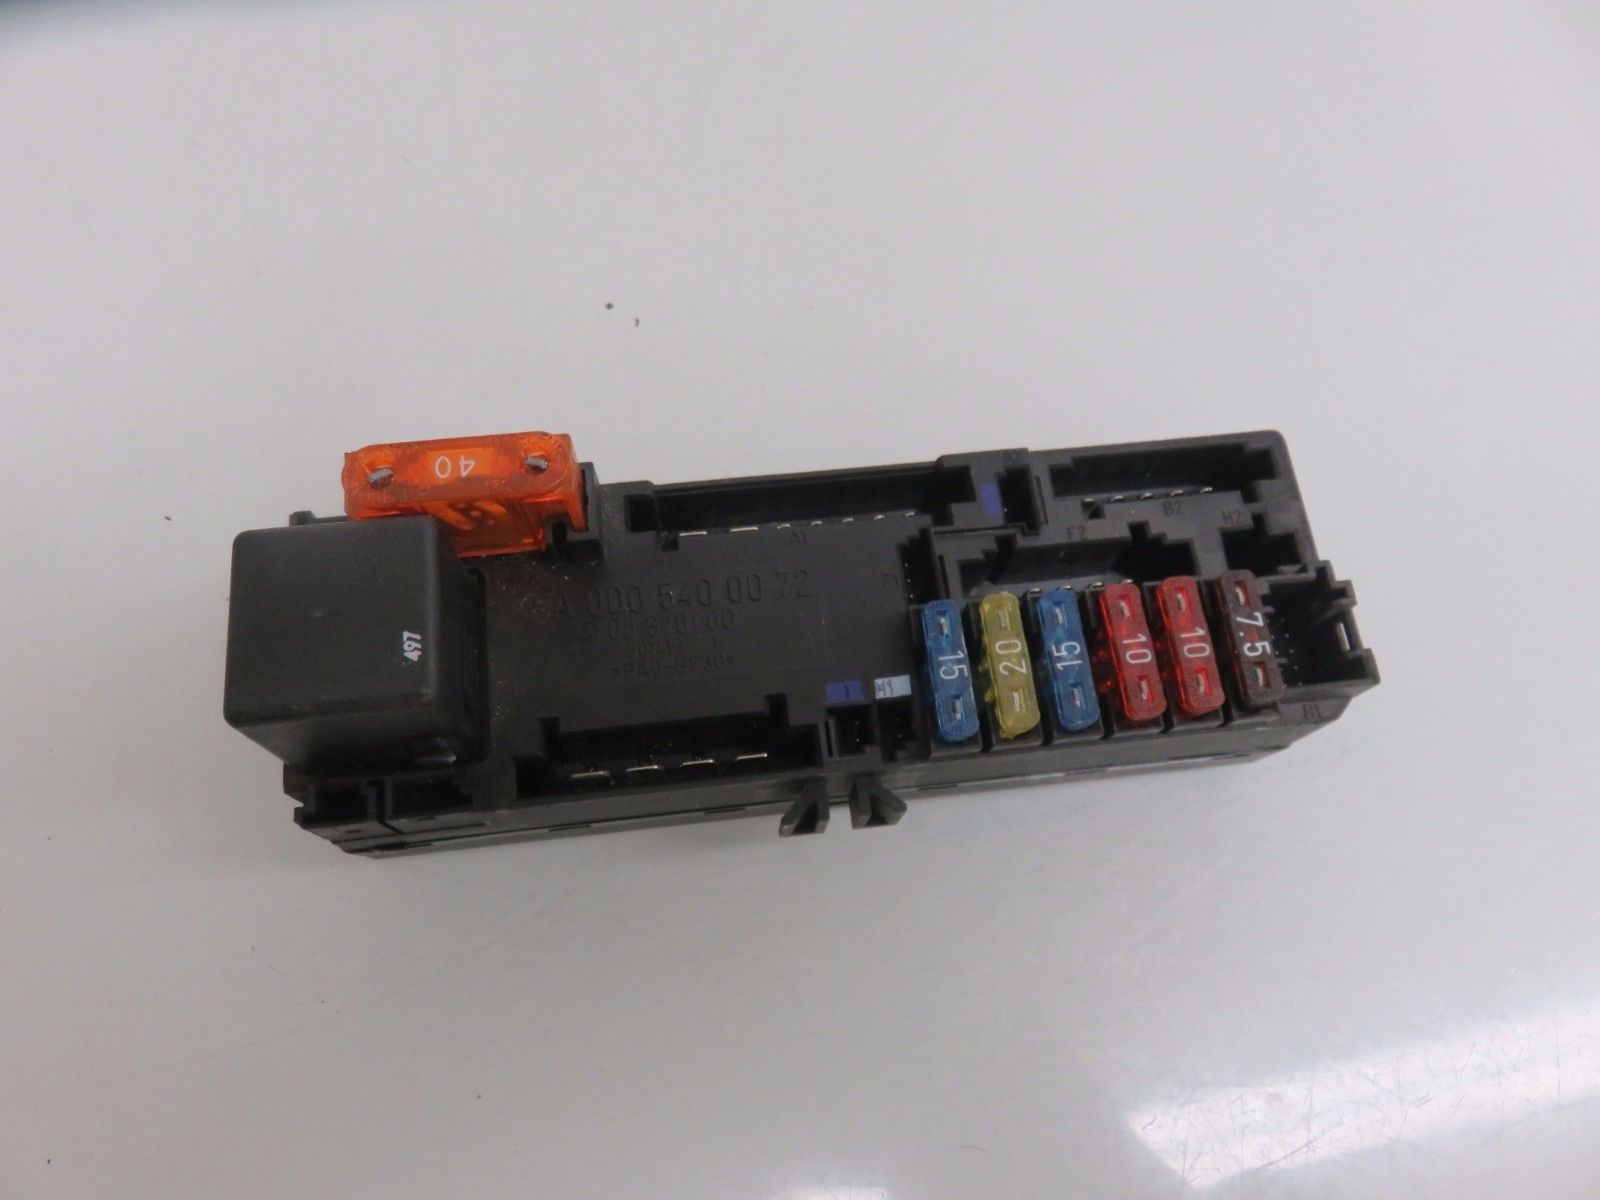 mercedes benz e400 fuse box wiring library 1998 saturn sl2 fuse box diagram 1998 saturn sl2 fuse box diagram 1998 saturn sl2 fuse box diagram 1998 saturn sl2 fuse box diagram